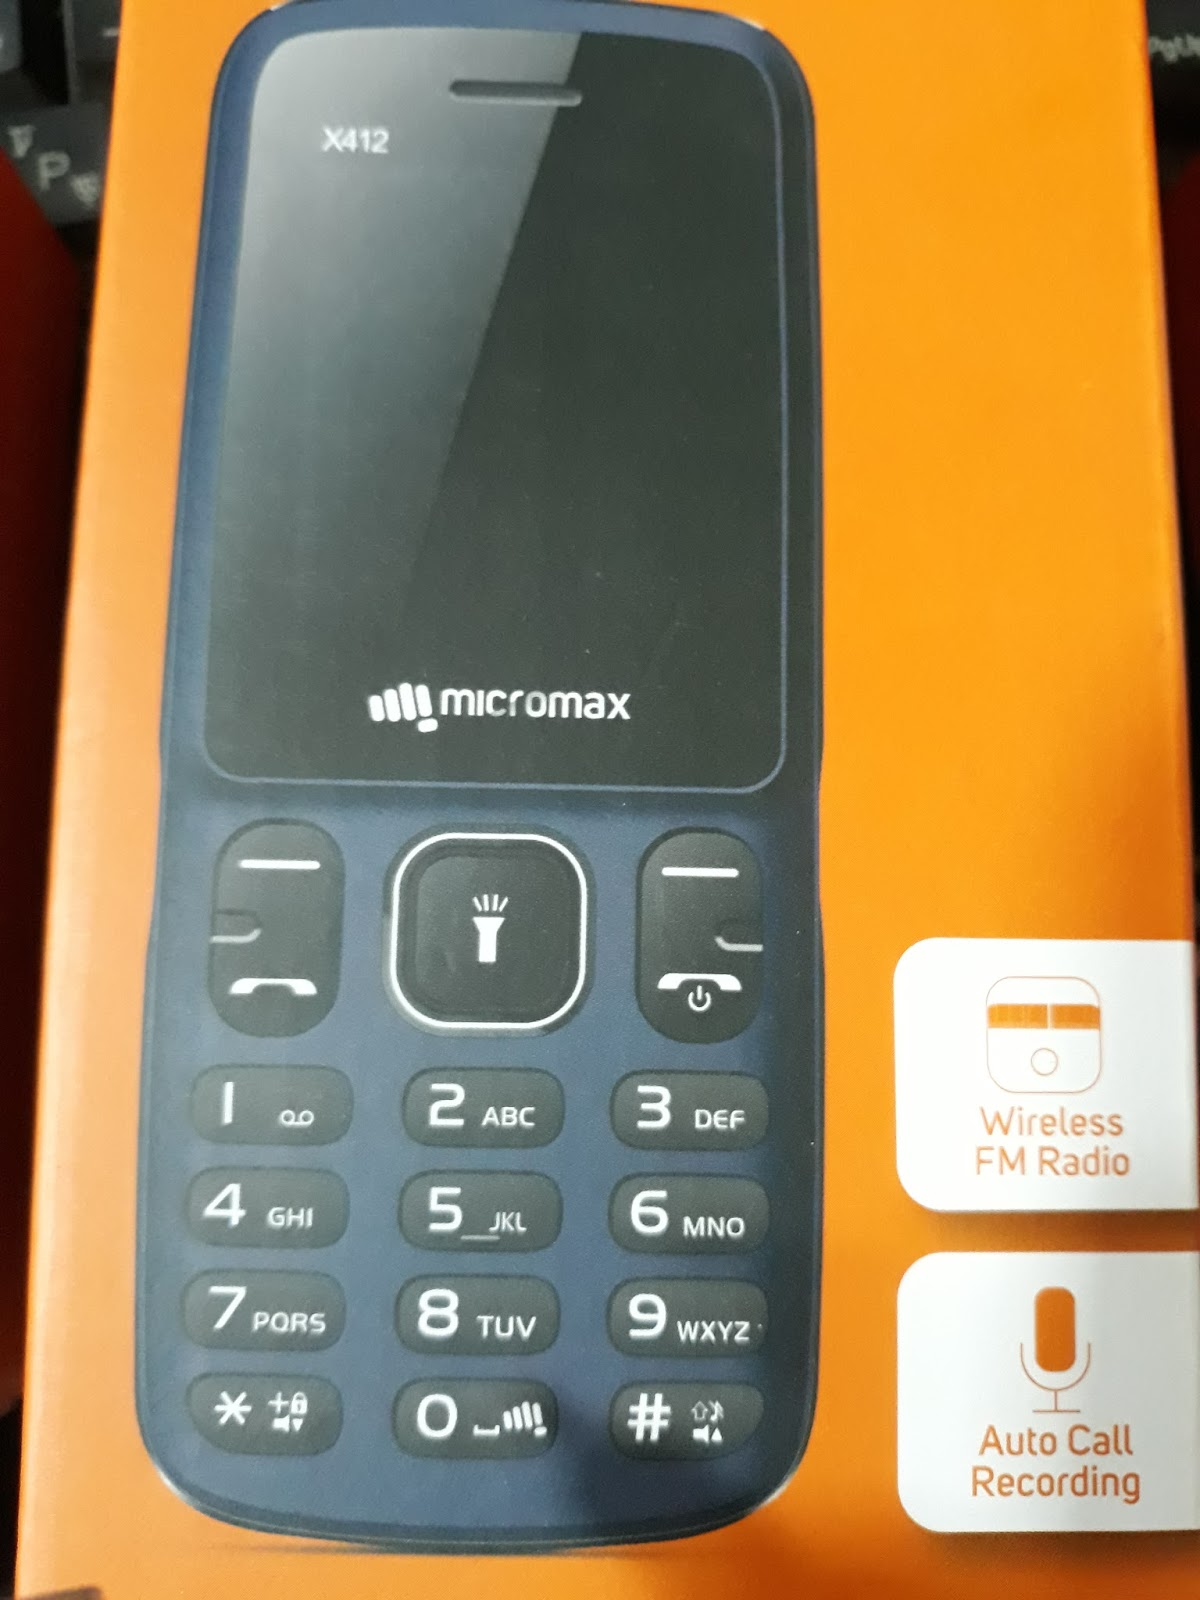 micromax x412 flash file no password mt-6261 - GSM TECH BD